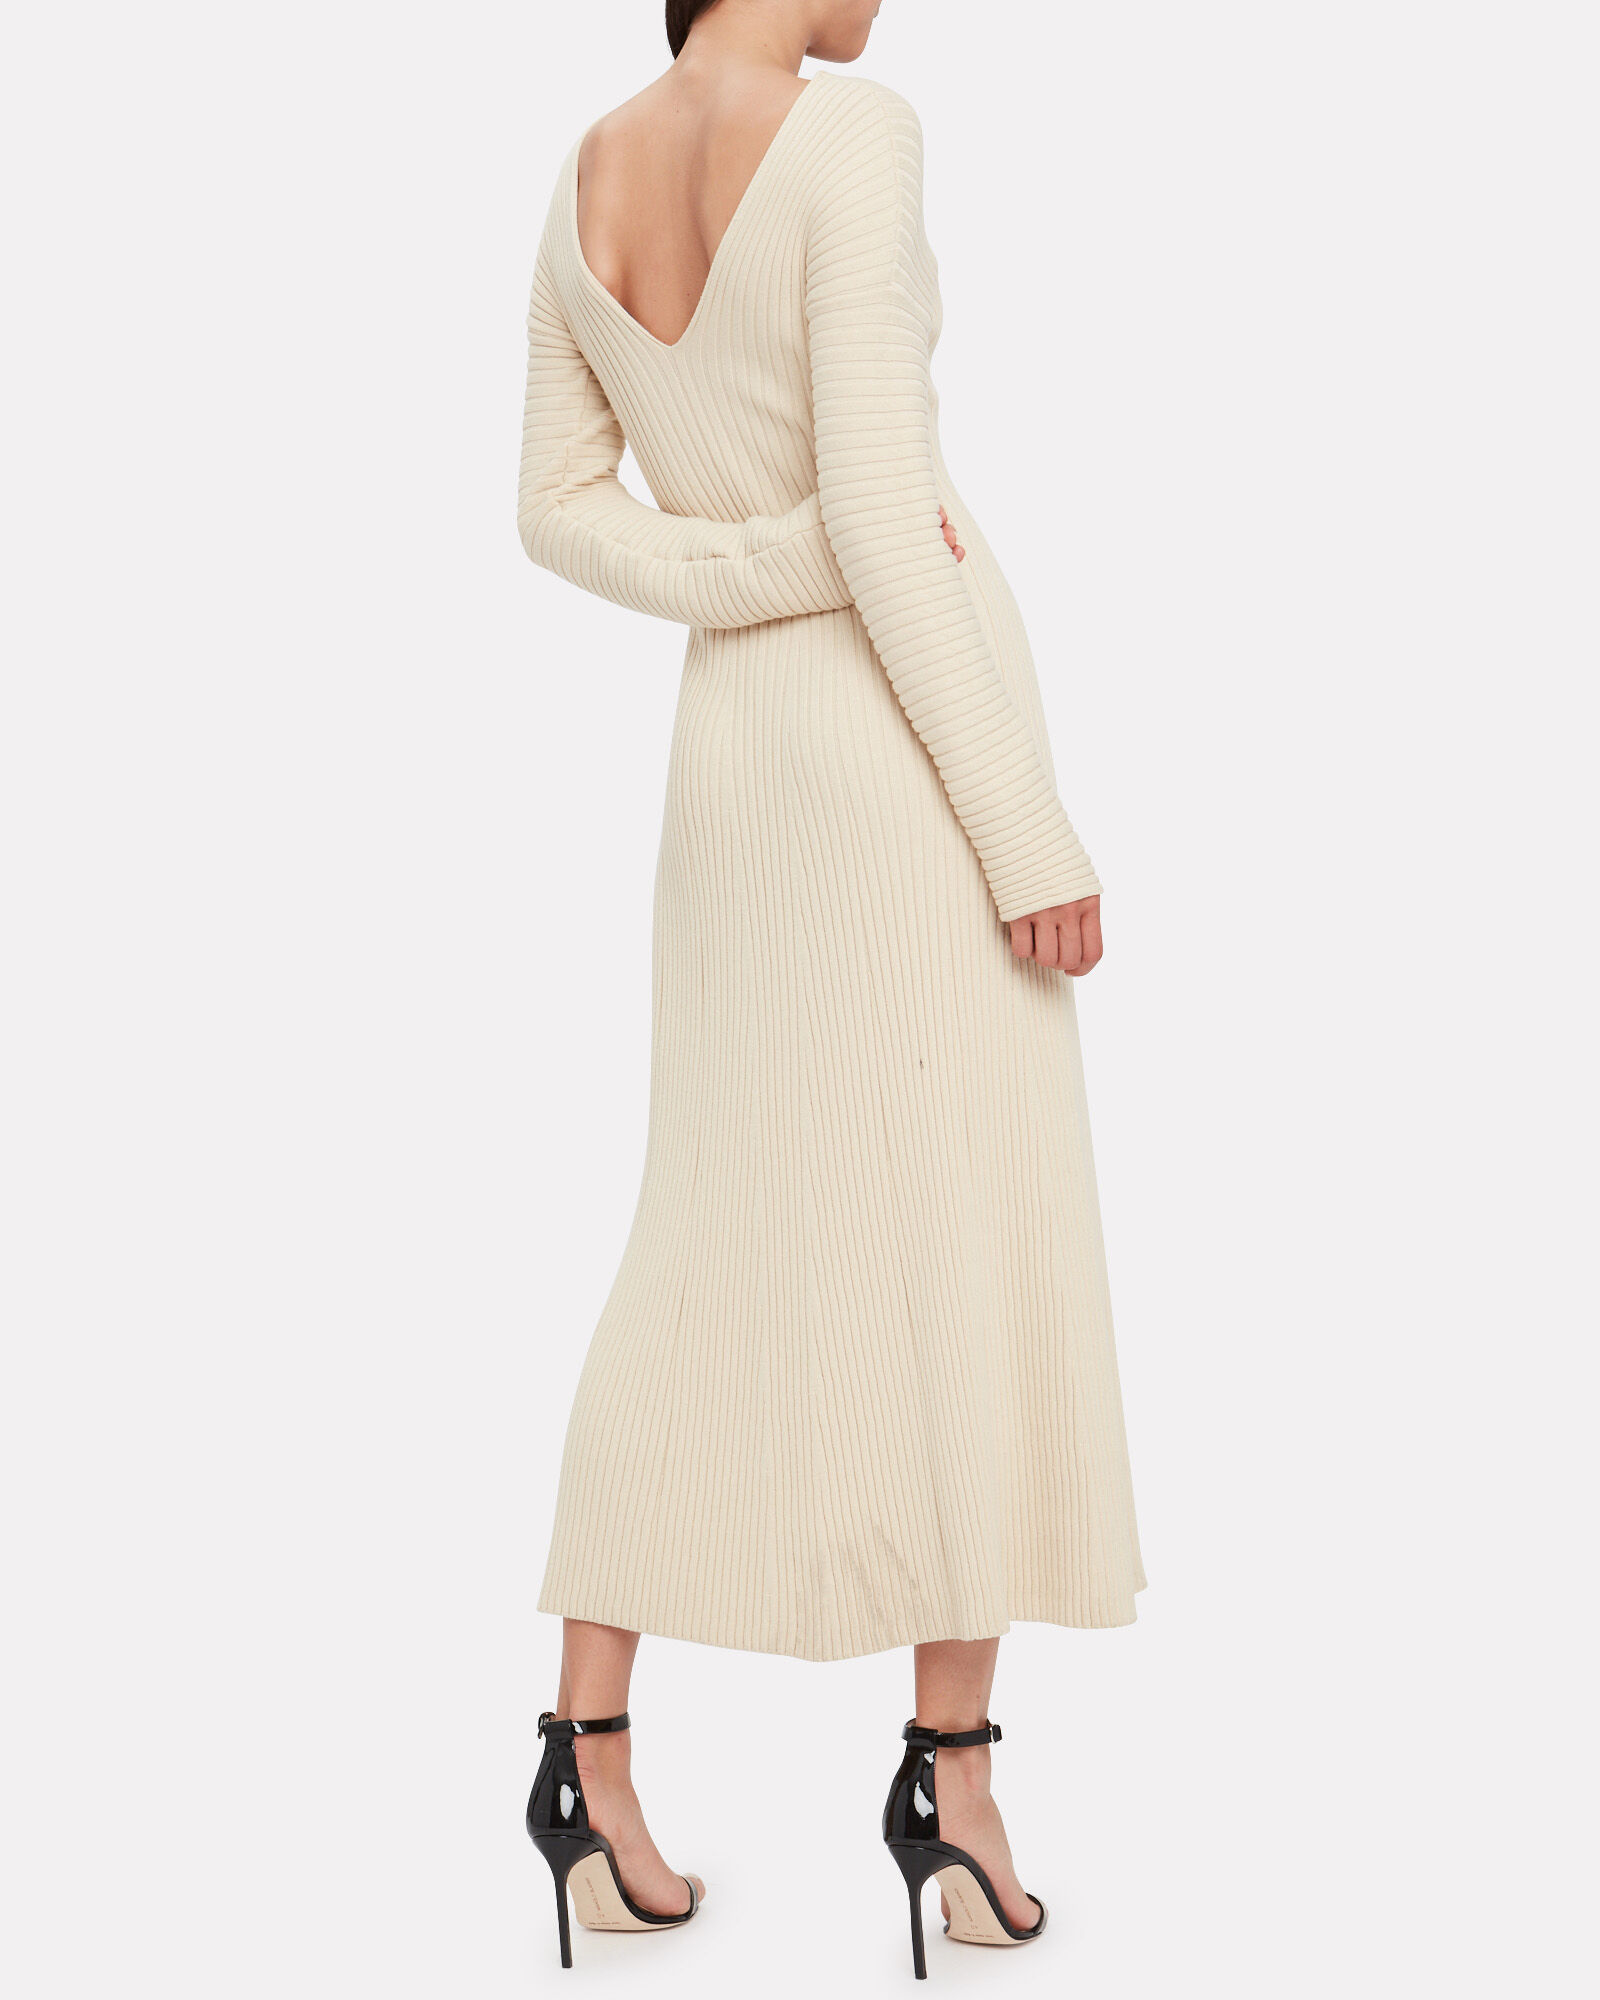 Fawn Ribbed Knit Dress, IVORY, hi-res